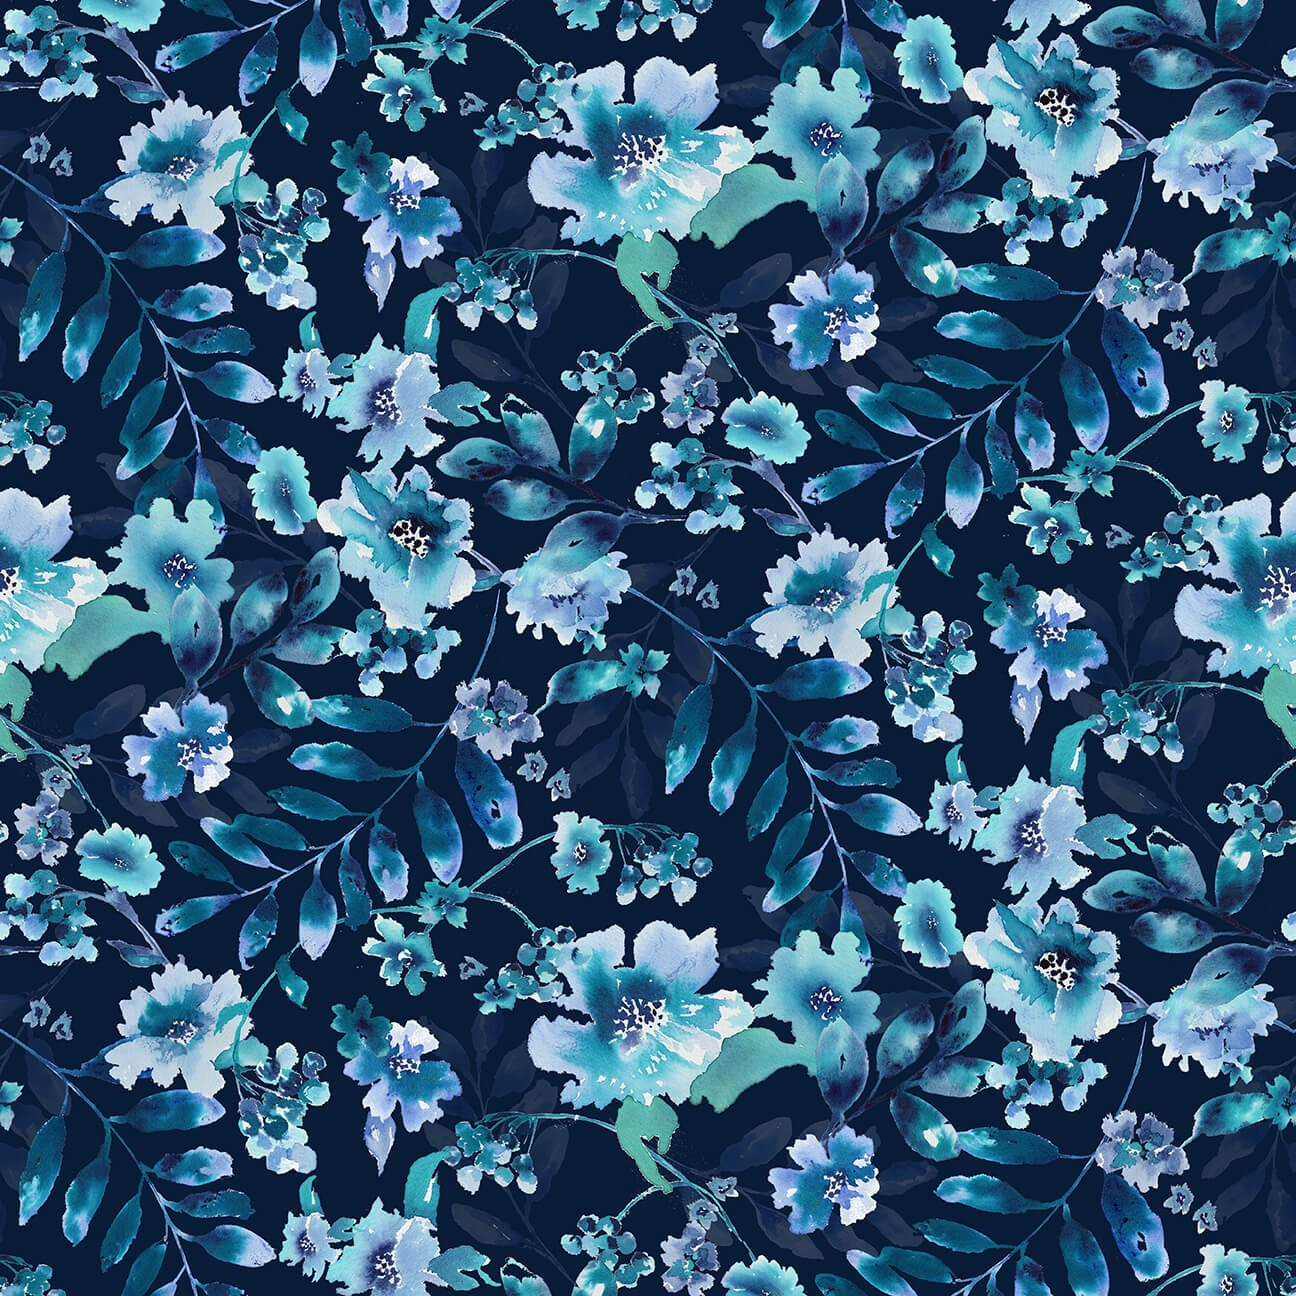 Midnight Sapphire Watercolor Lg. Floral Navy